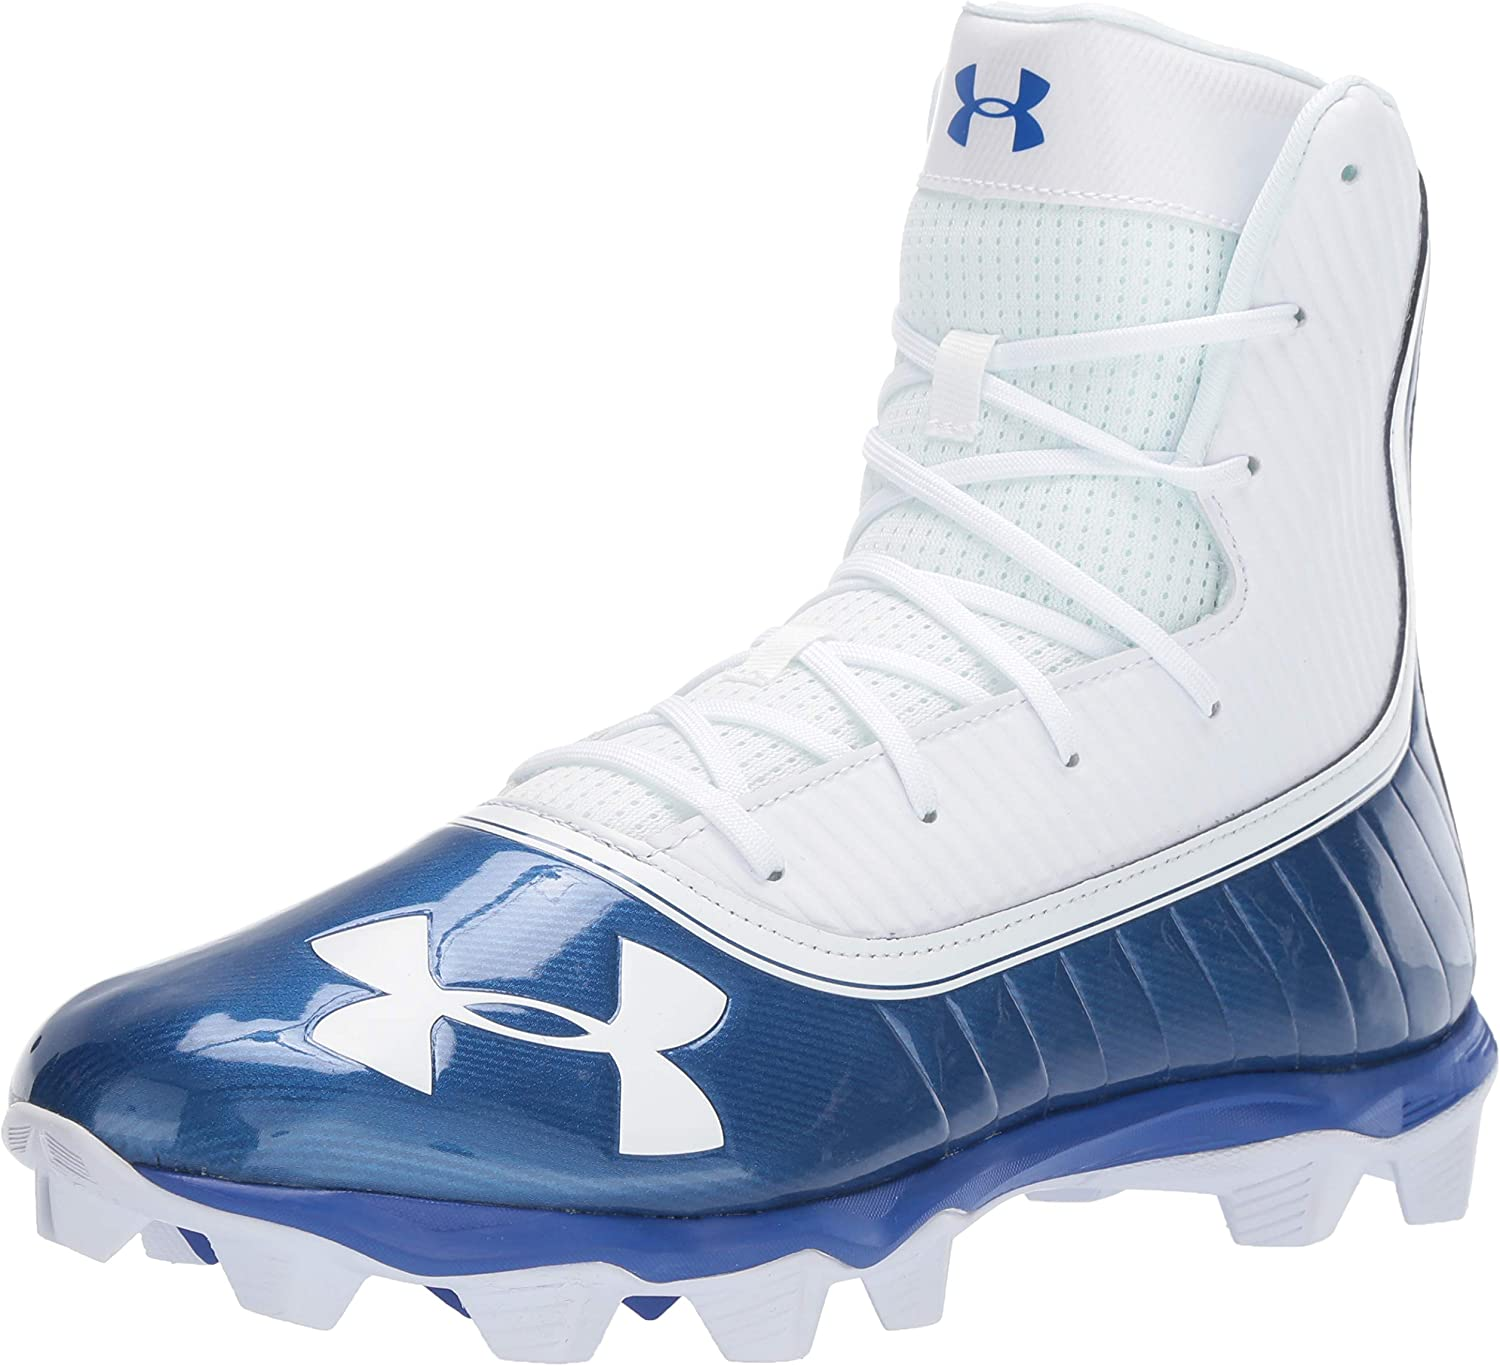 Under Armour Men's Highlight RM Football Shoe, Team Royal (401)/白い, 11.5 M US